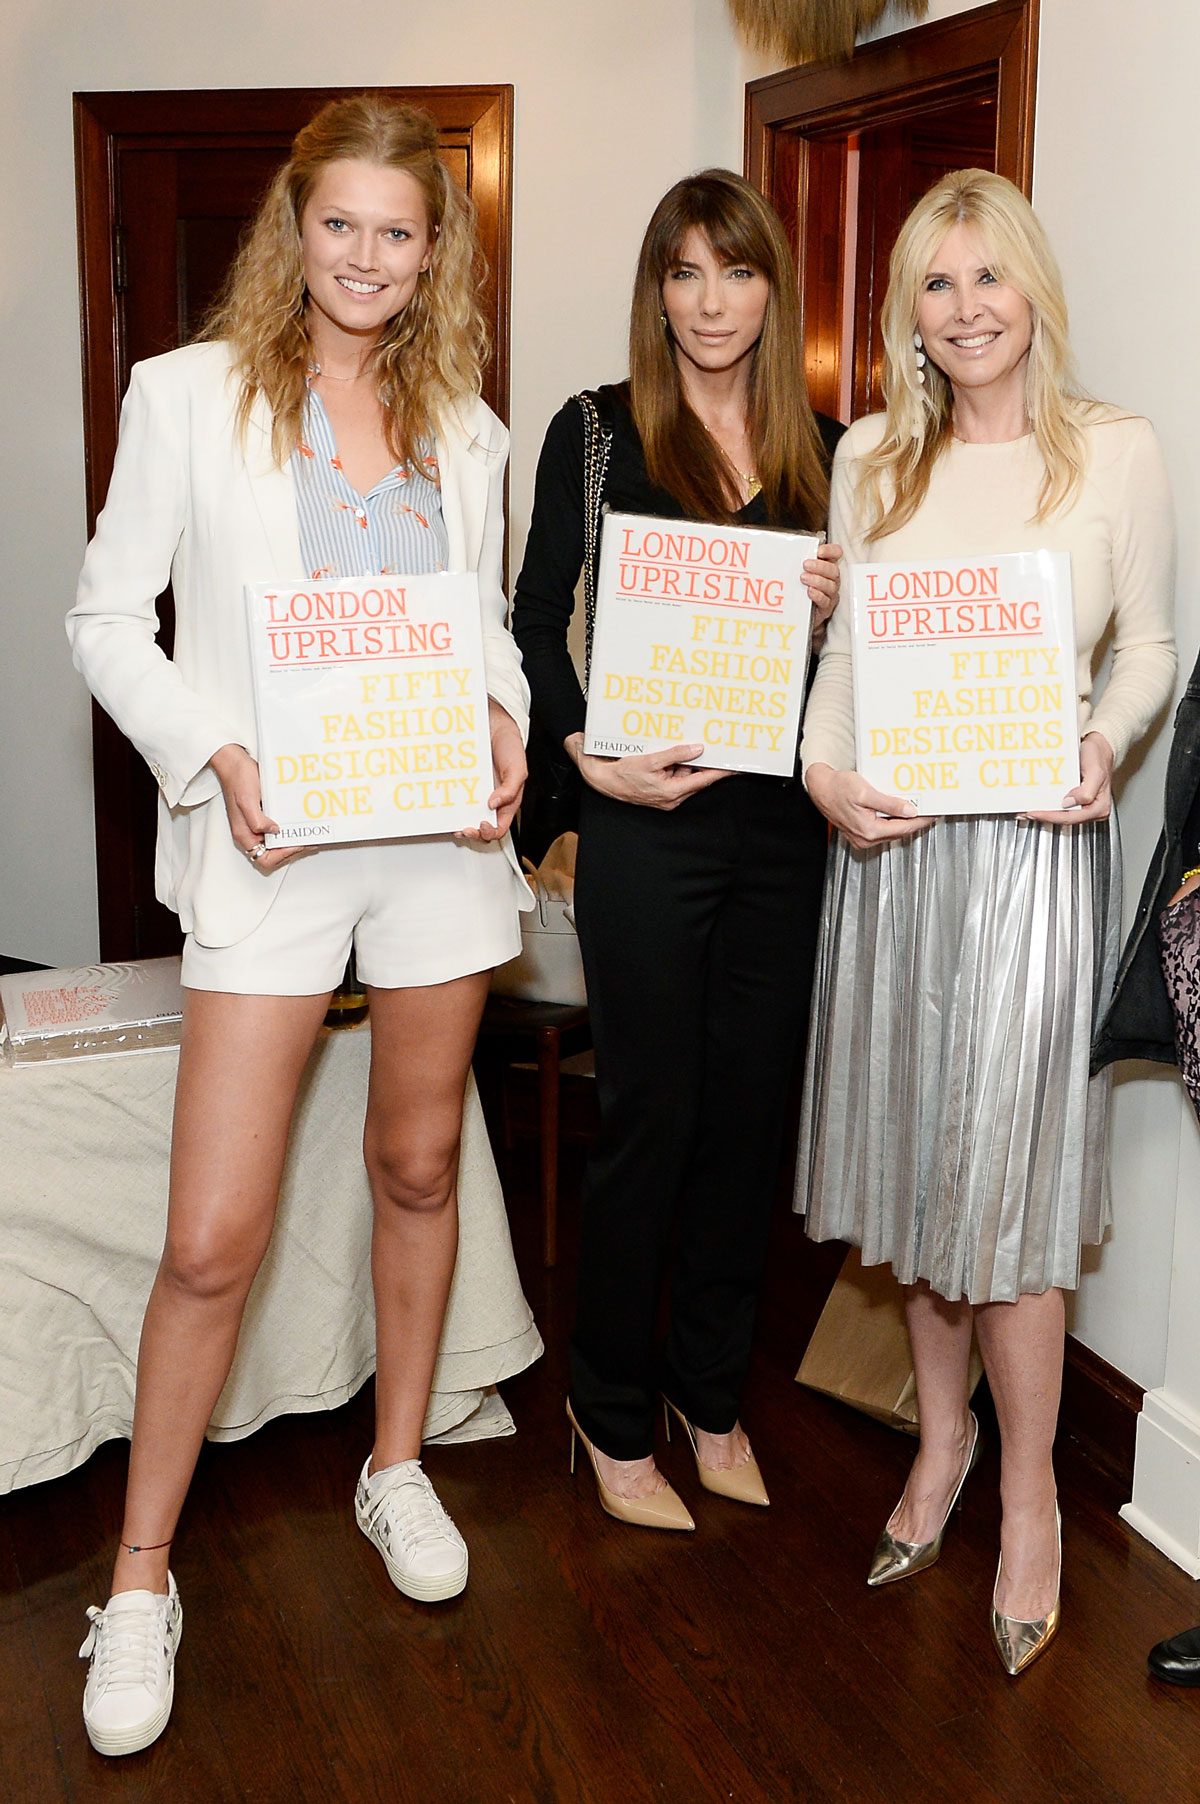 Toni Garrn; Jennifer Stallone and Irena Medavoy celebrate the launch of London Uprising Fifty Fashion Designers One City on April 18, 2017 in Los Angeles, California. (Photo by Stefanie Keenan/Getty Images for Tania Fares)